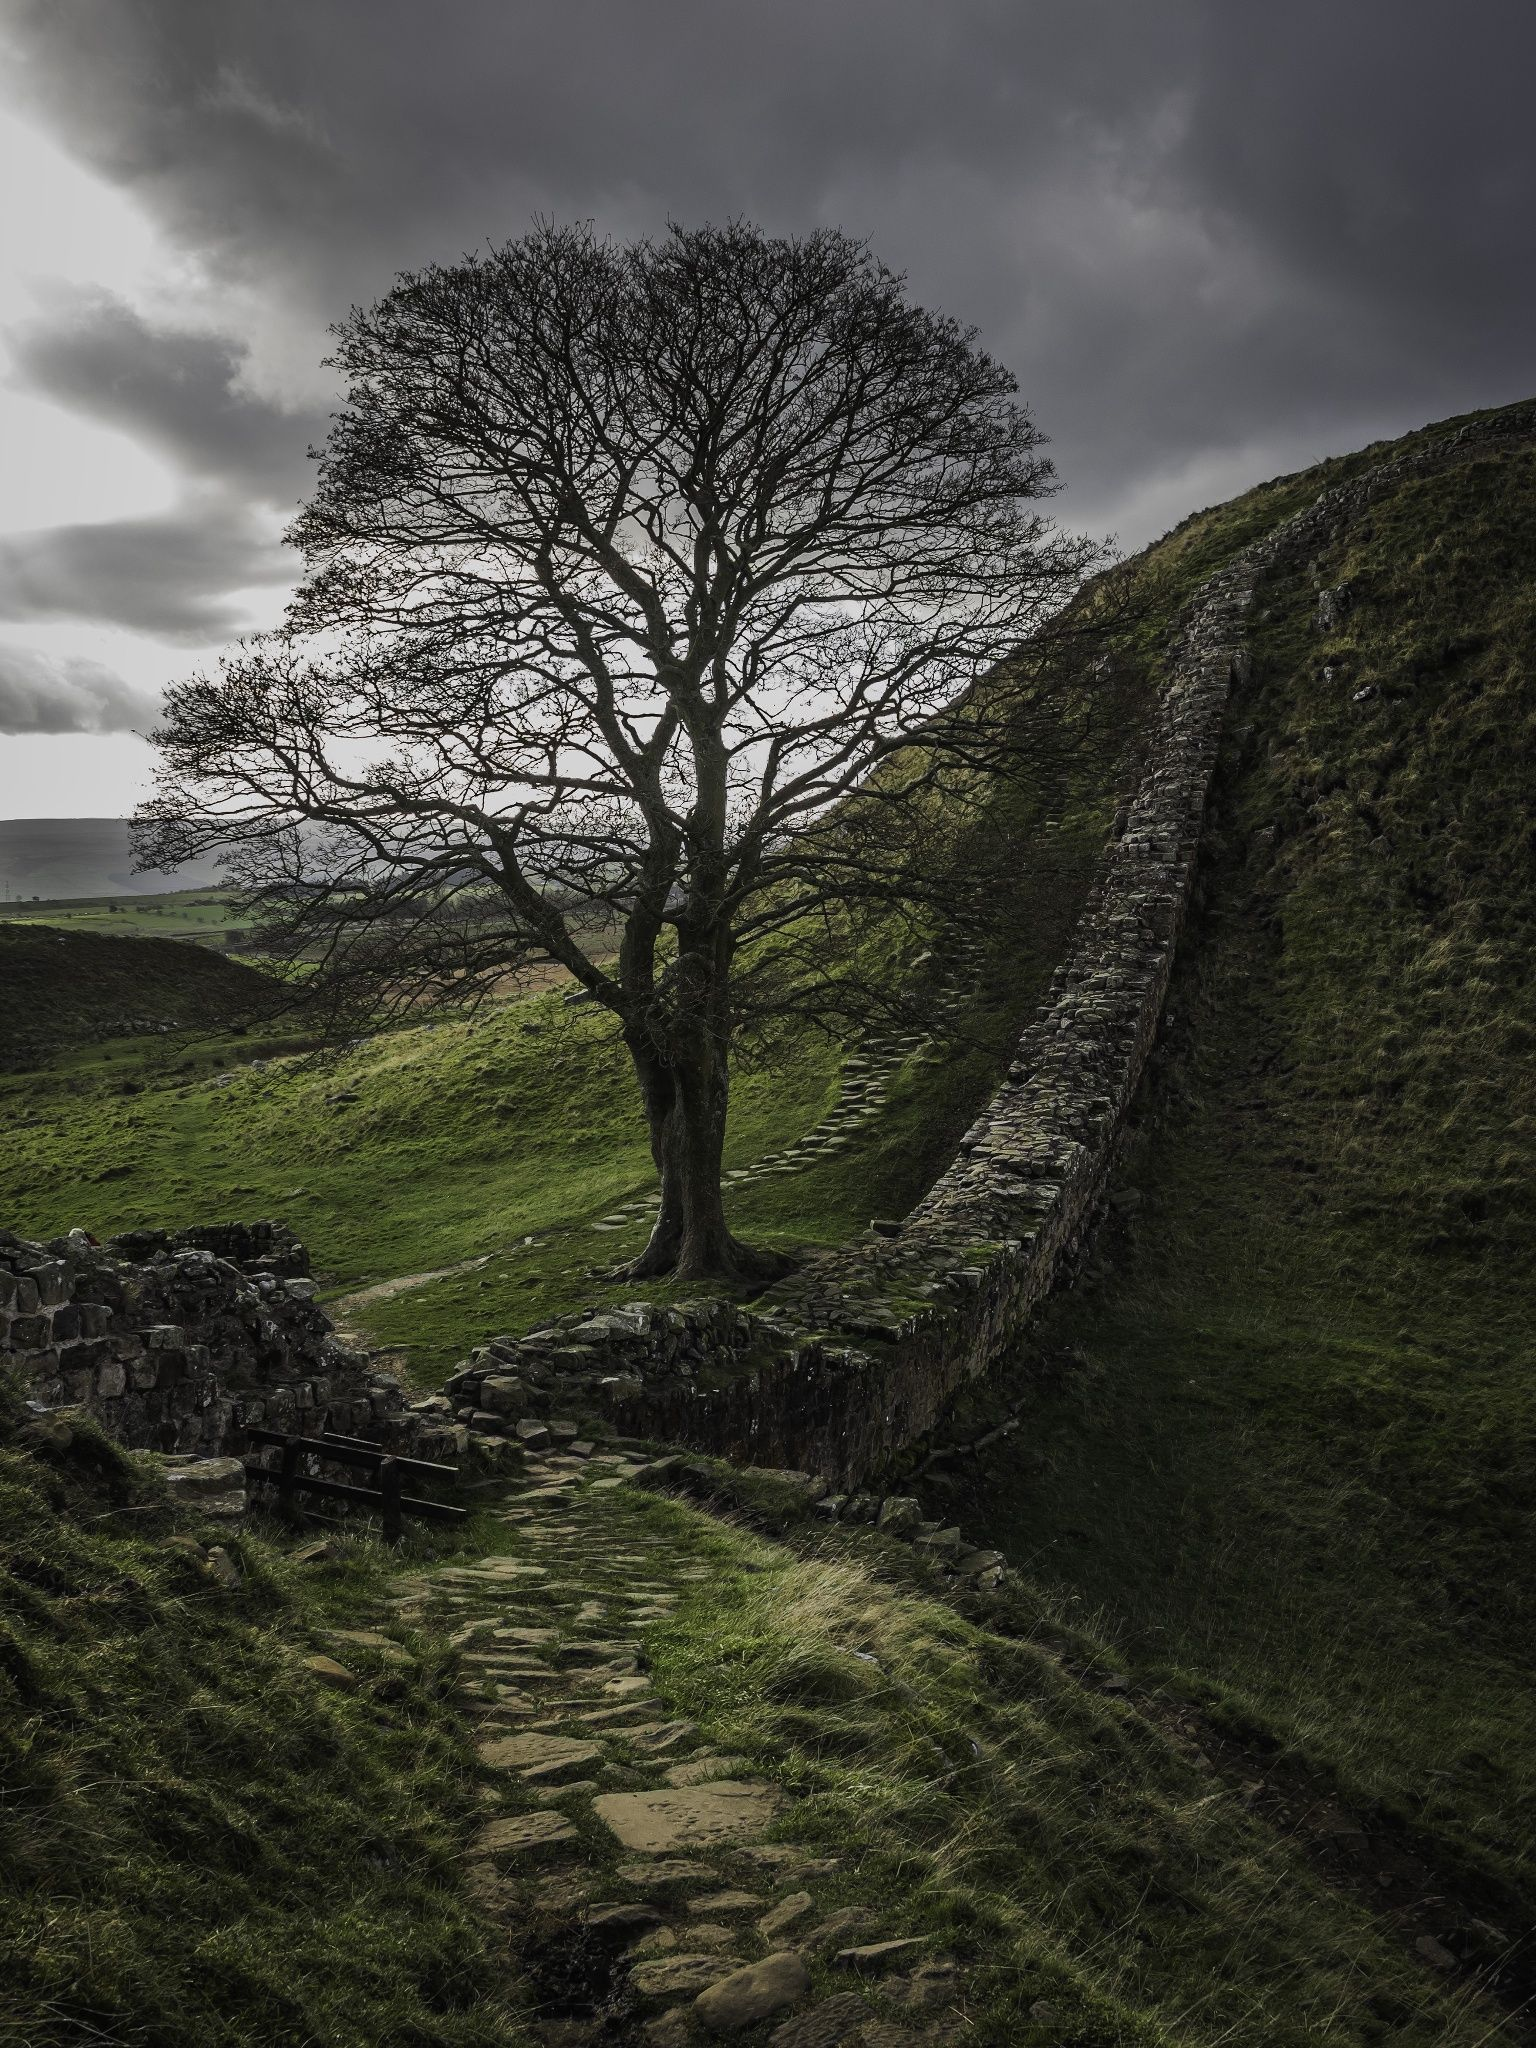 sycamore gap hadrians wall by richard loader on 500px on hadrians wall id=23912